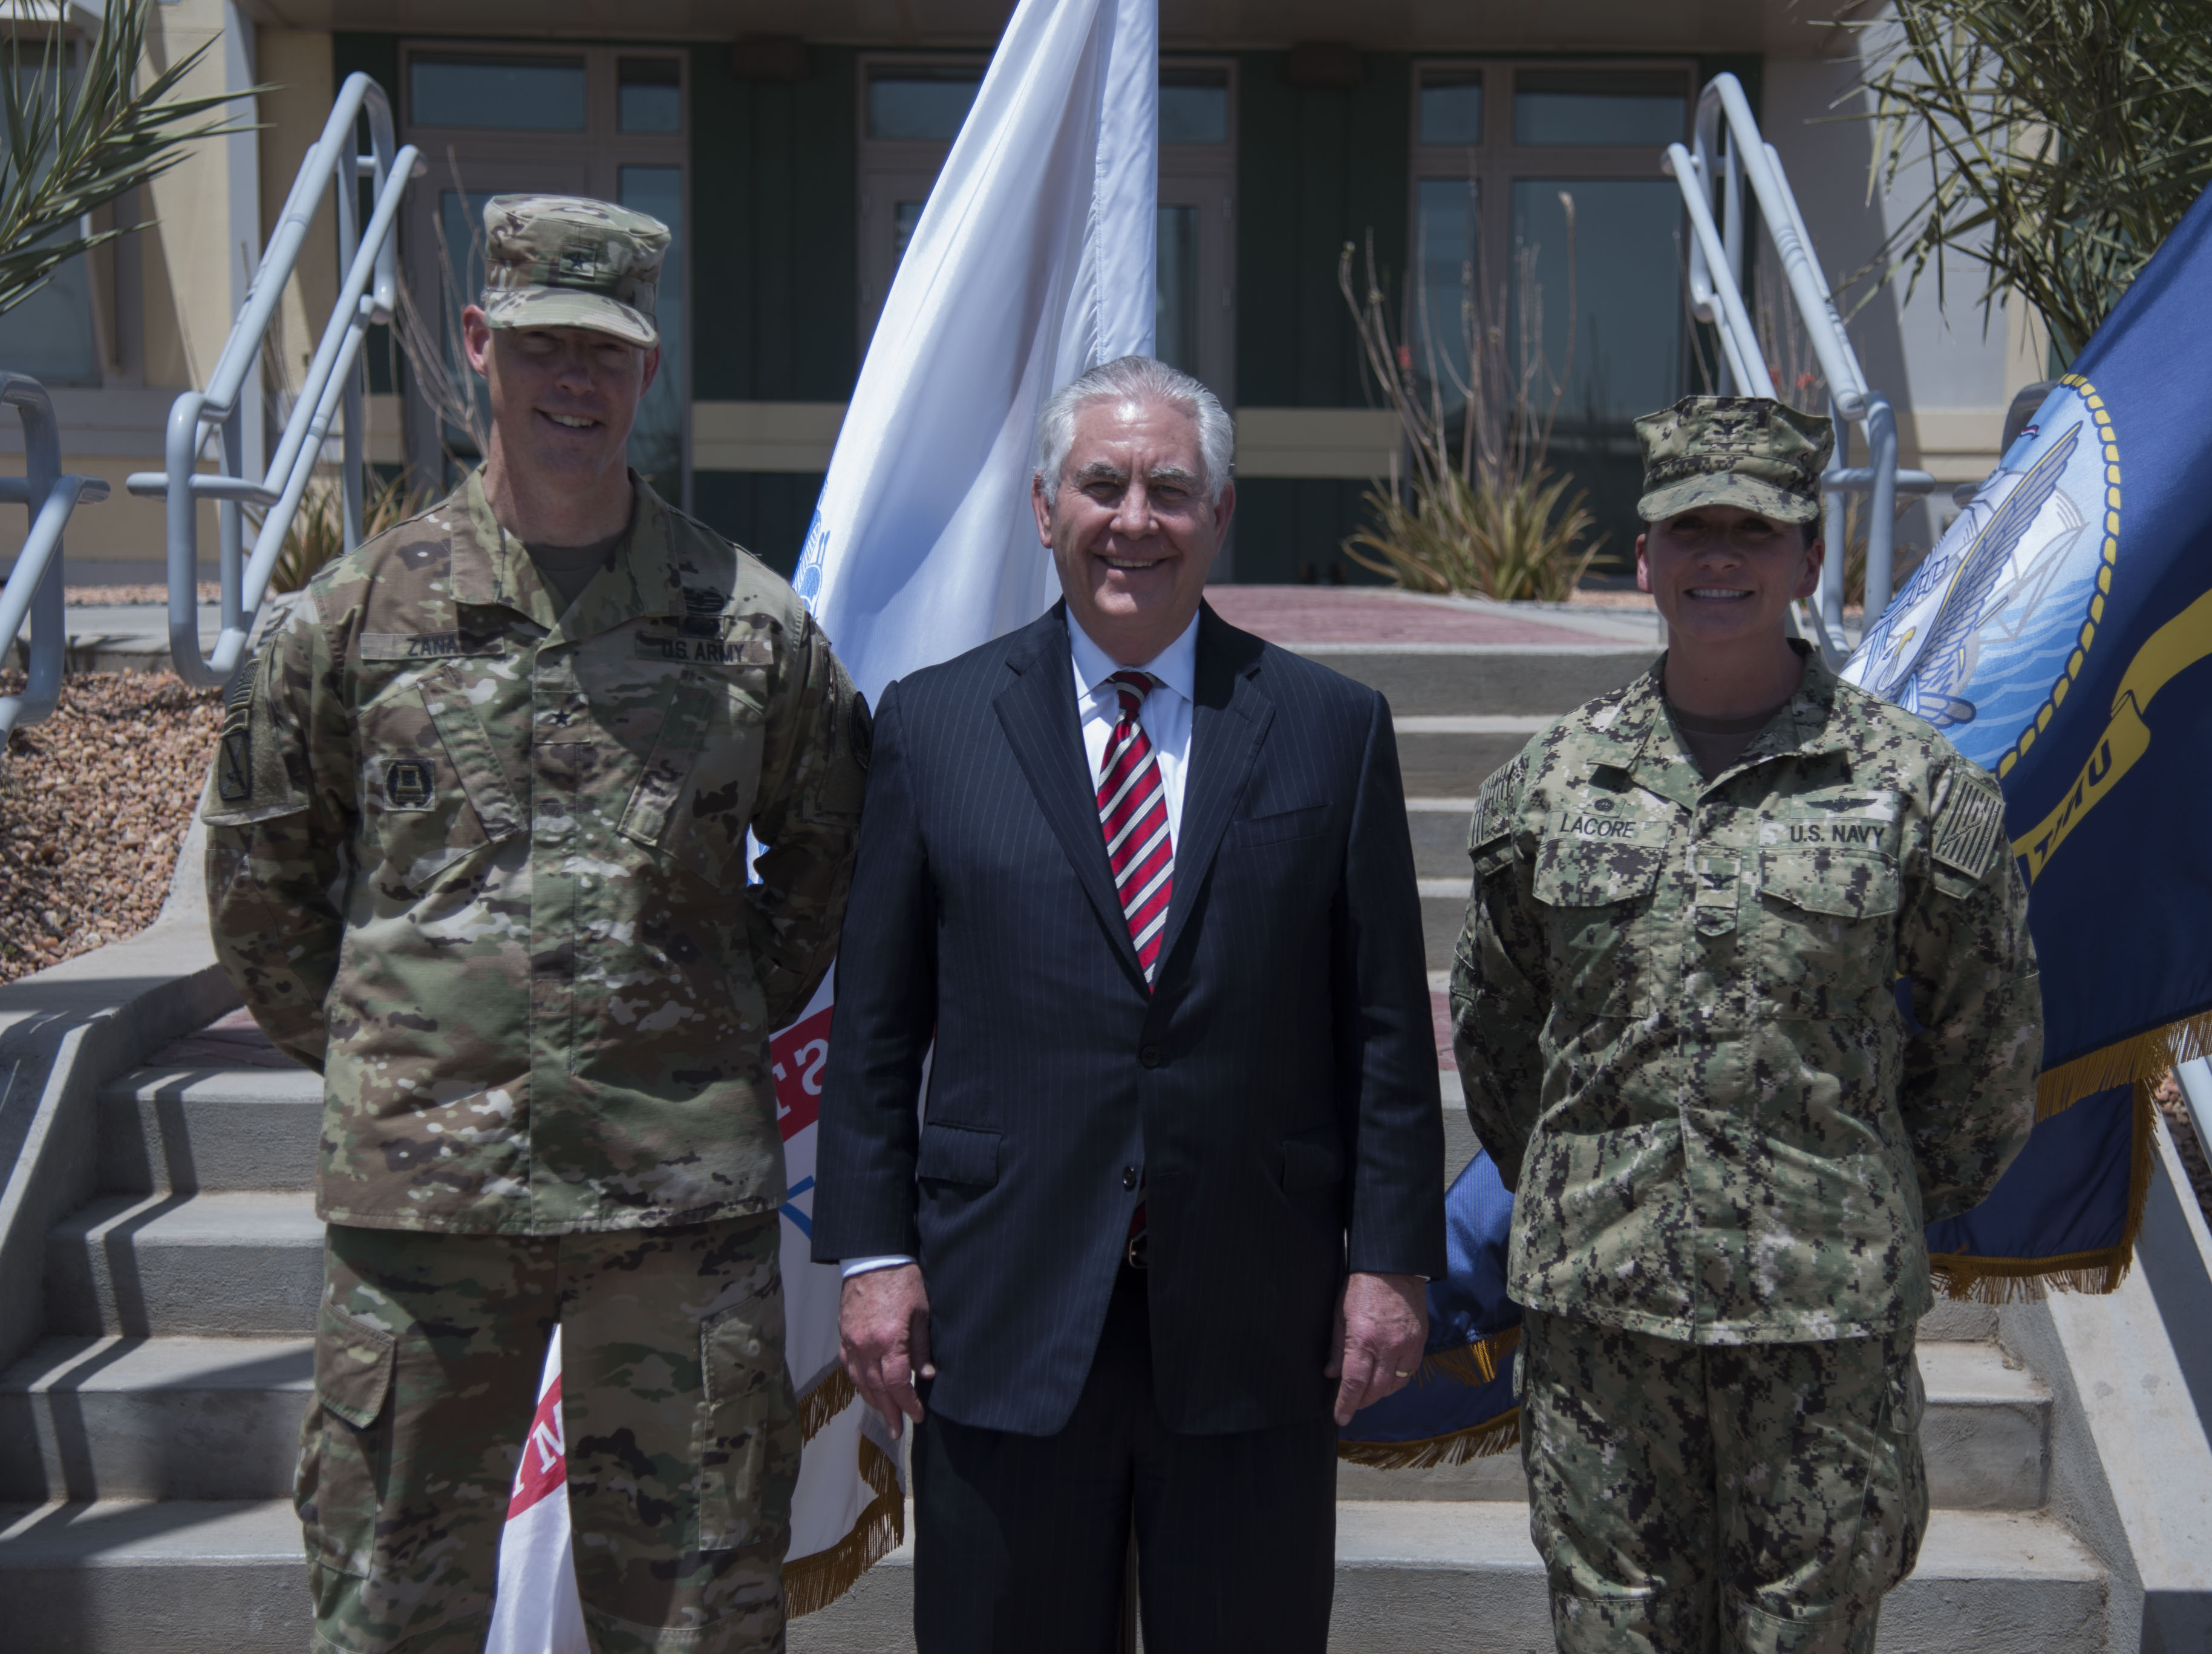 U.S. Secretary of State Rex Tillerson poses for a photo with U.S. Army Brig. Gen. William L. Zana, Deputy Commander of Combined Joint Task Force - Horn of Africa, and U.S. Navy Capt. Nancy S. Lacore, Commander of Camp Lemonnier, at Camp Lemonnier, Djibouti, March 9, 2018. Secretary Tillerson traveled to Djibouti to discuss the U.S.-Djiboutian partnership, and exchanged views on bilateral concerns, security threats, and economic reforms. (U.S. Air National Guard photo by Staff Sgt. Allyson L. Manners)